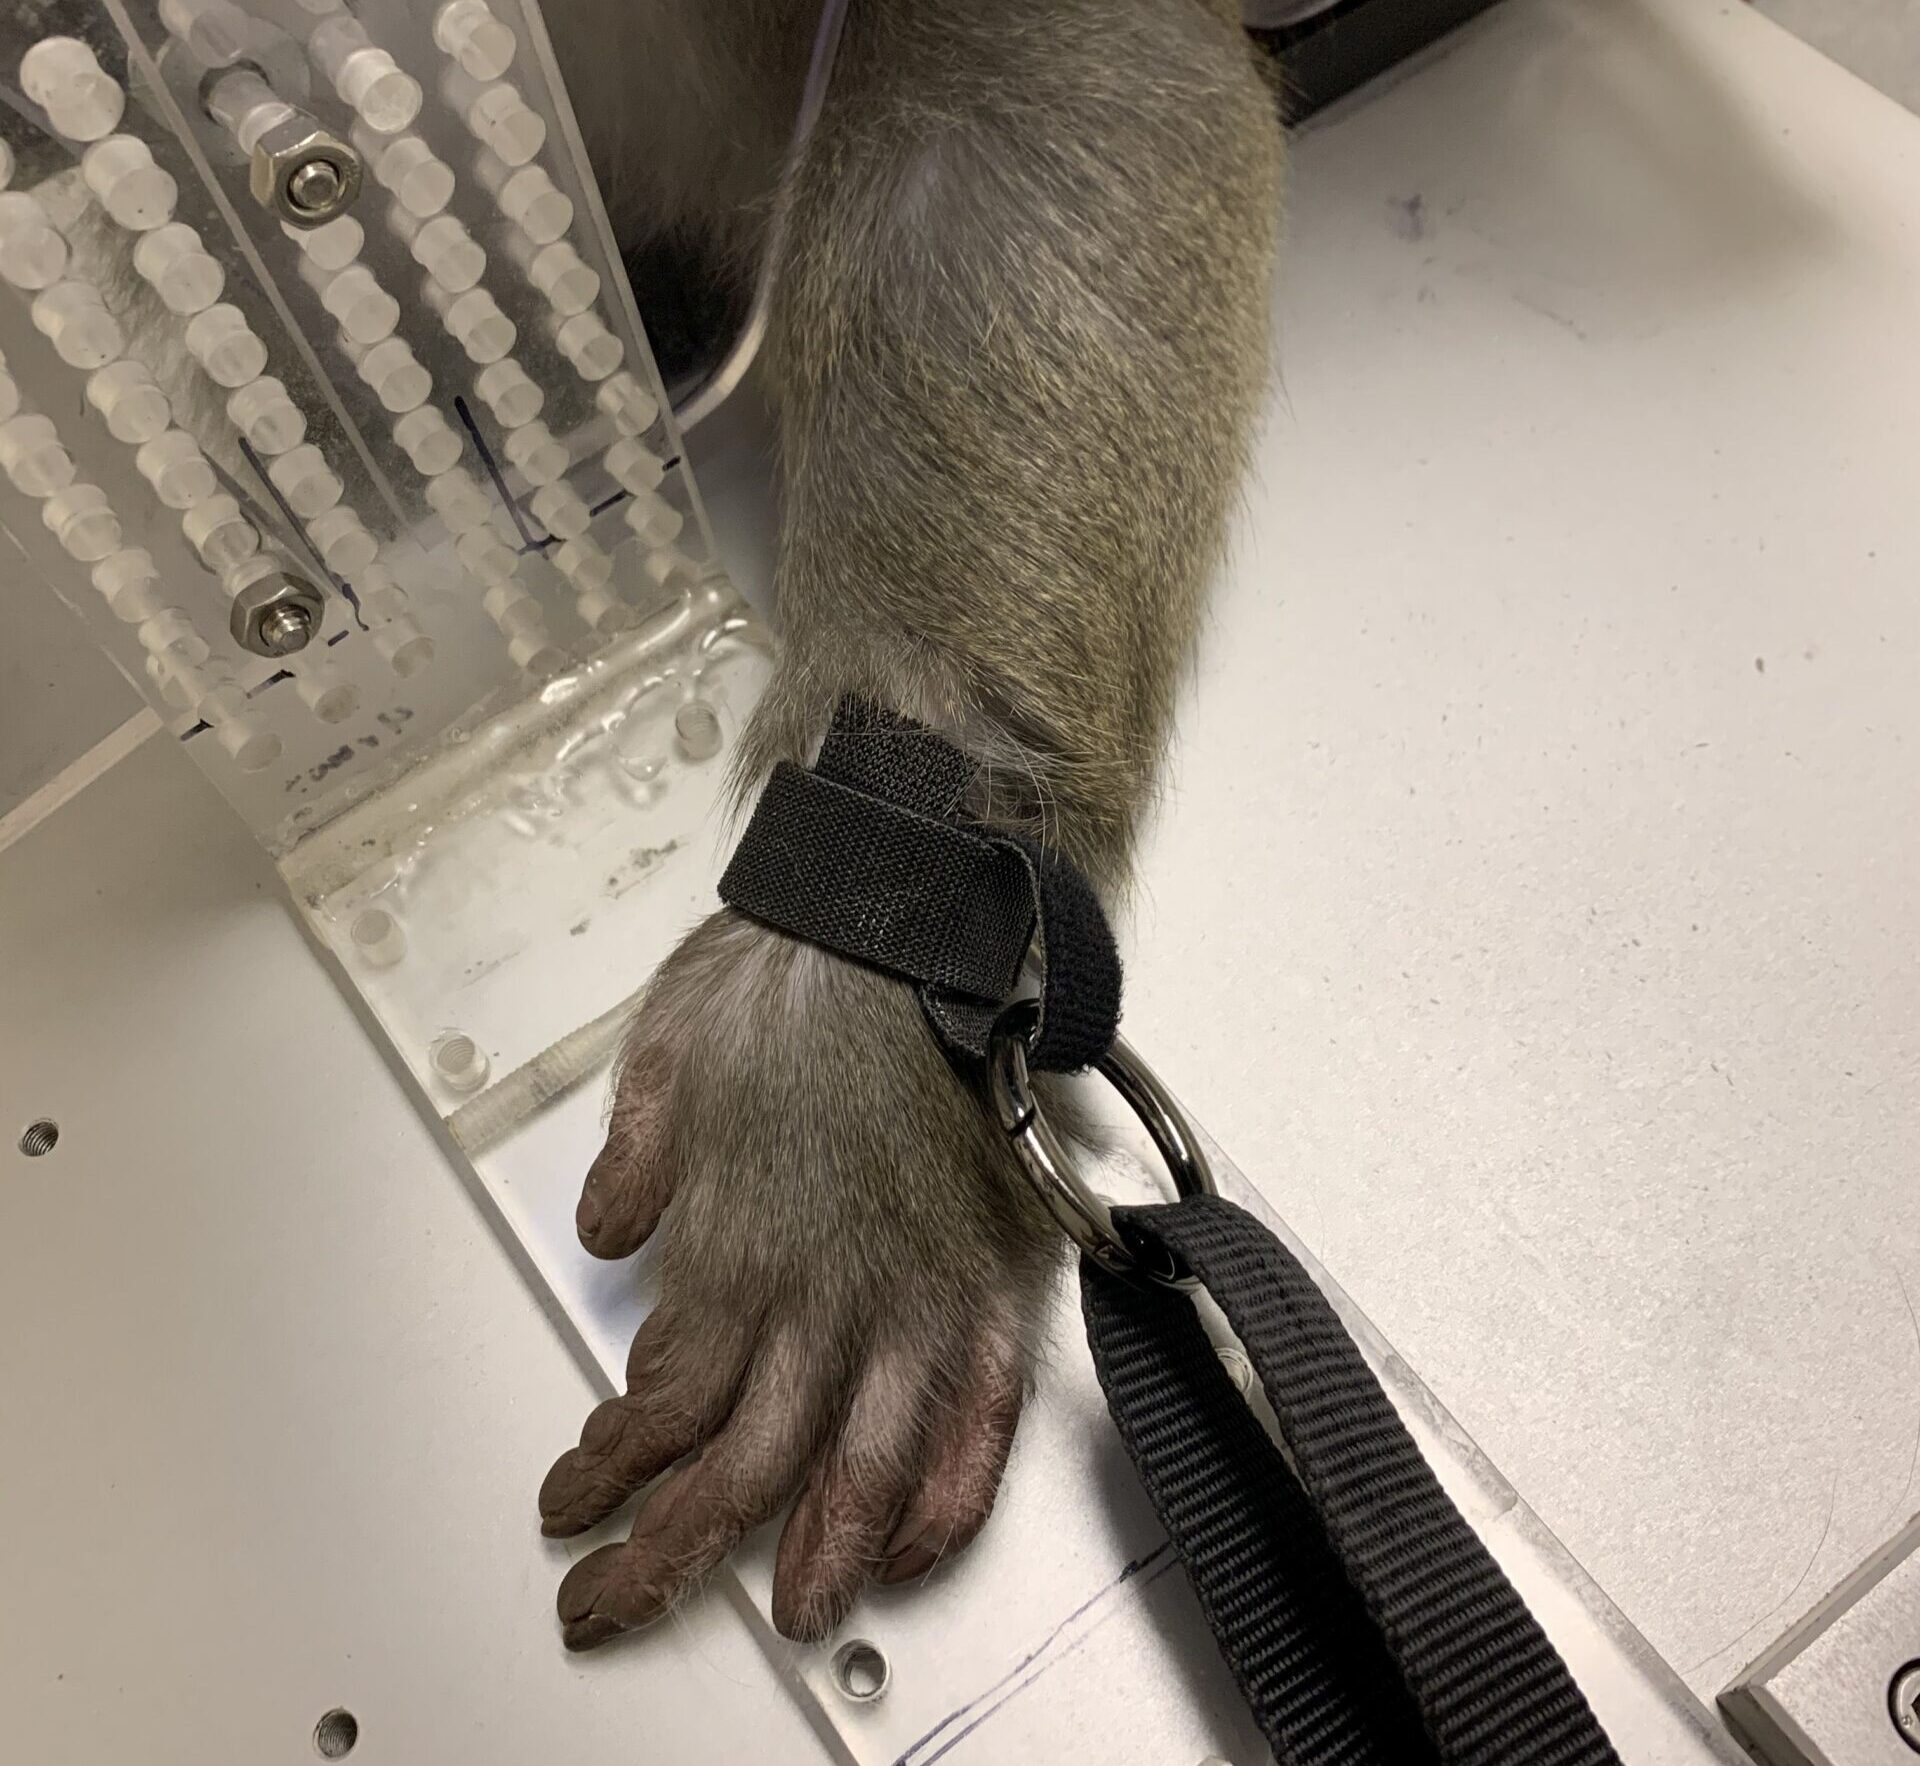 Photo #4 of a monkey in restraints at Arizona State University's primate research laboratory